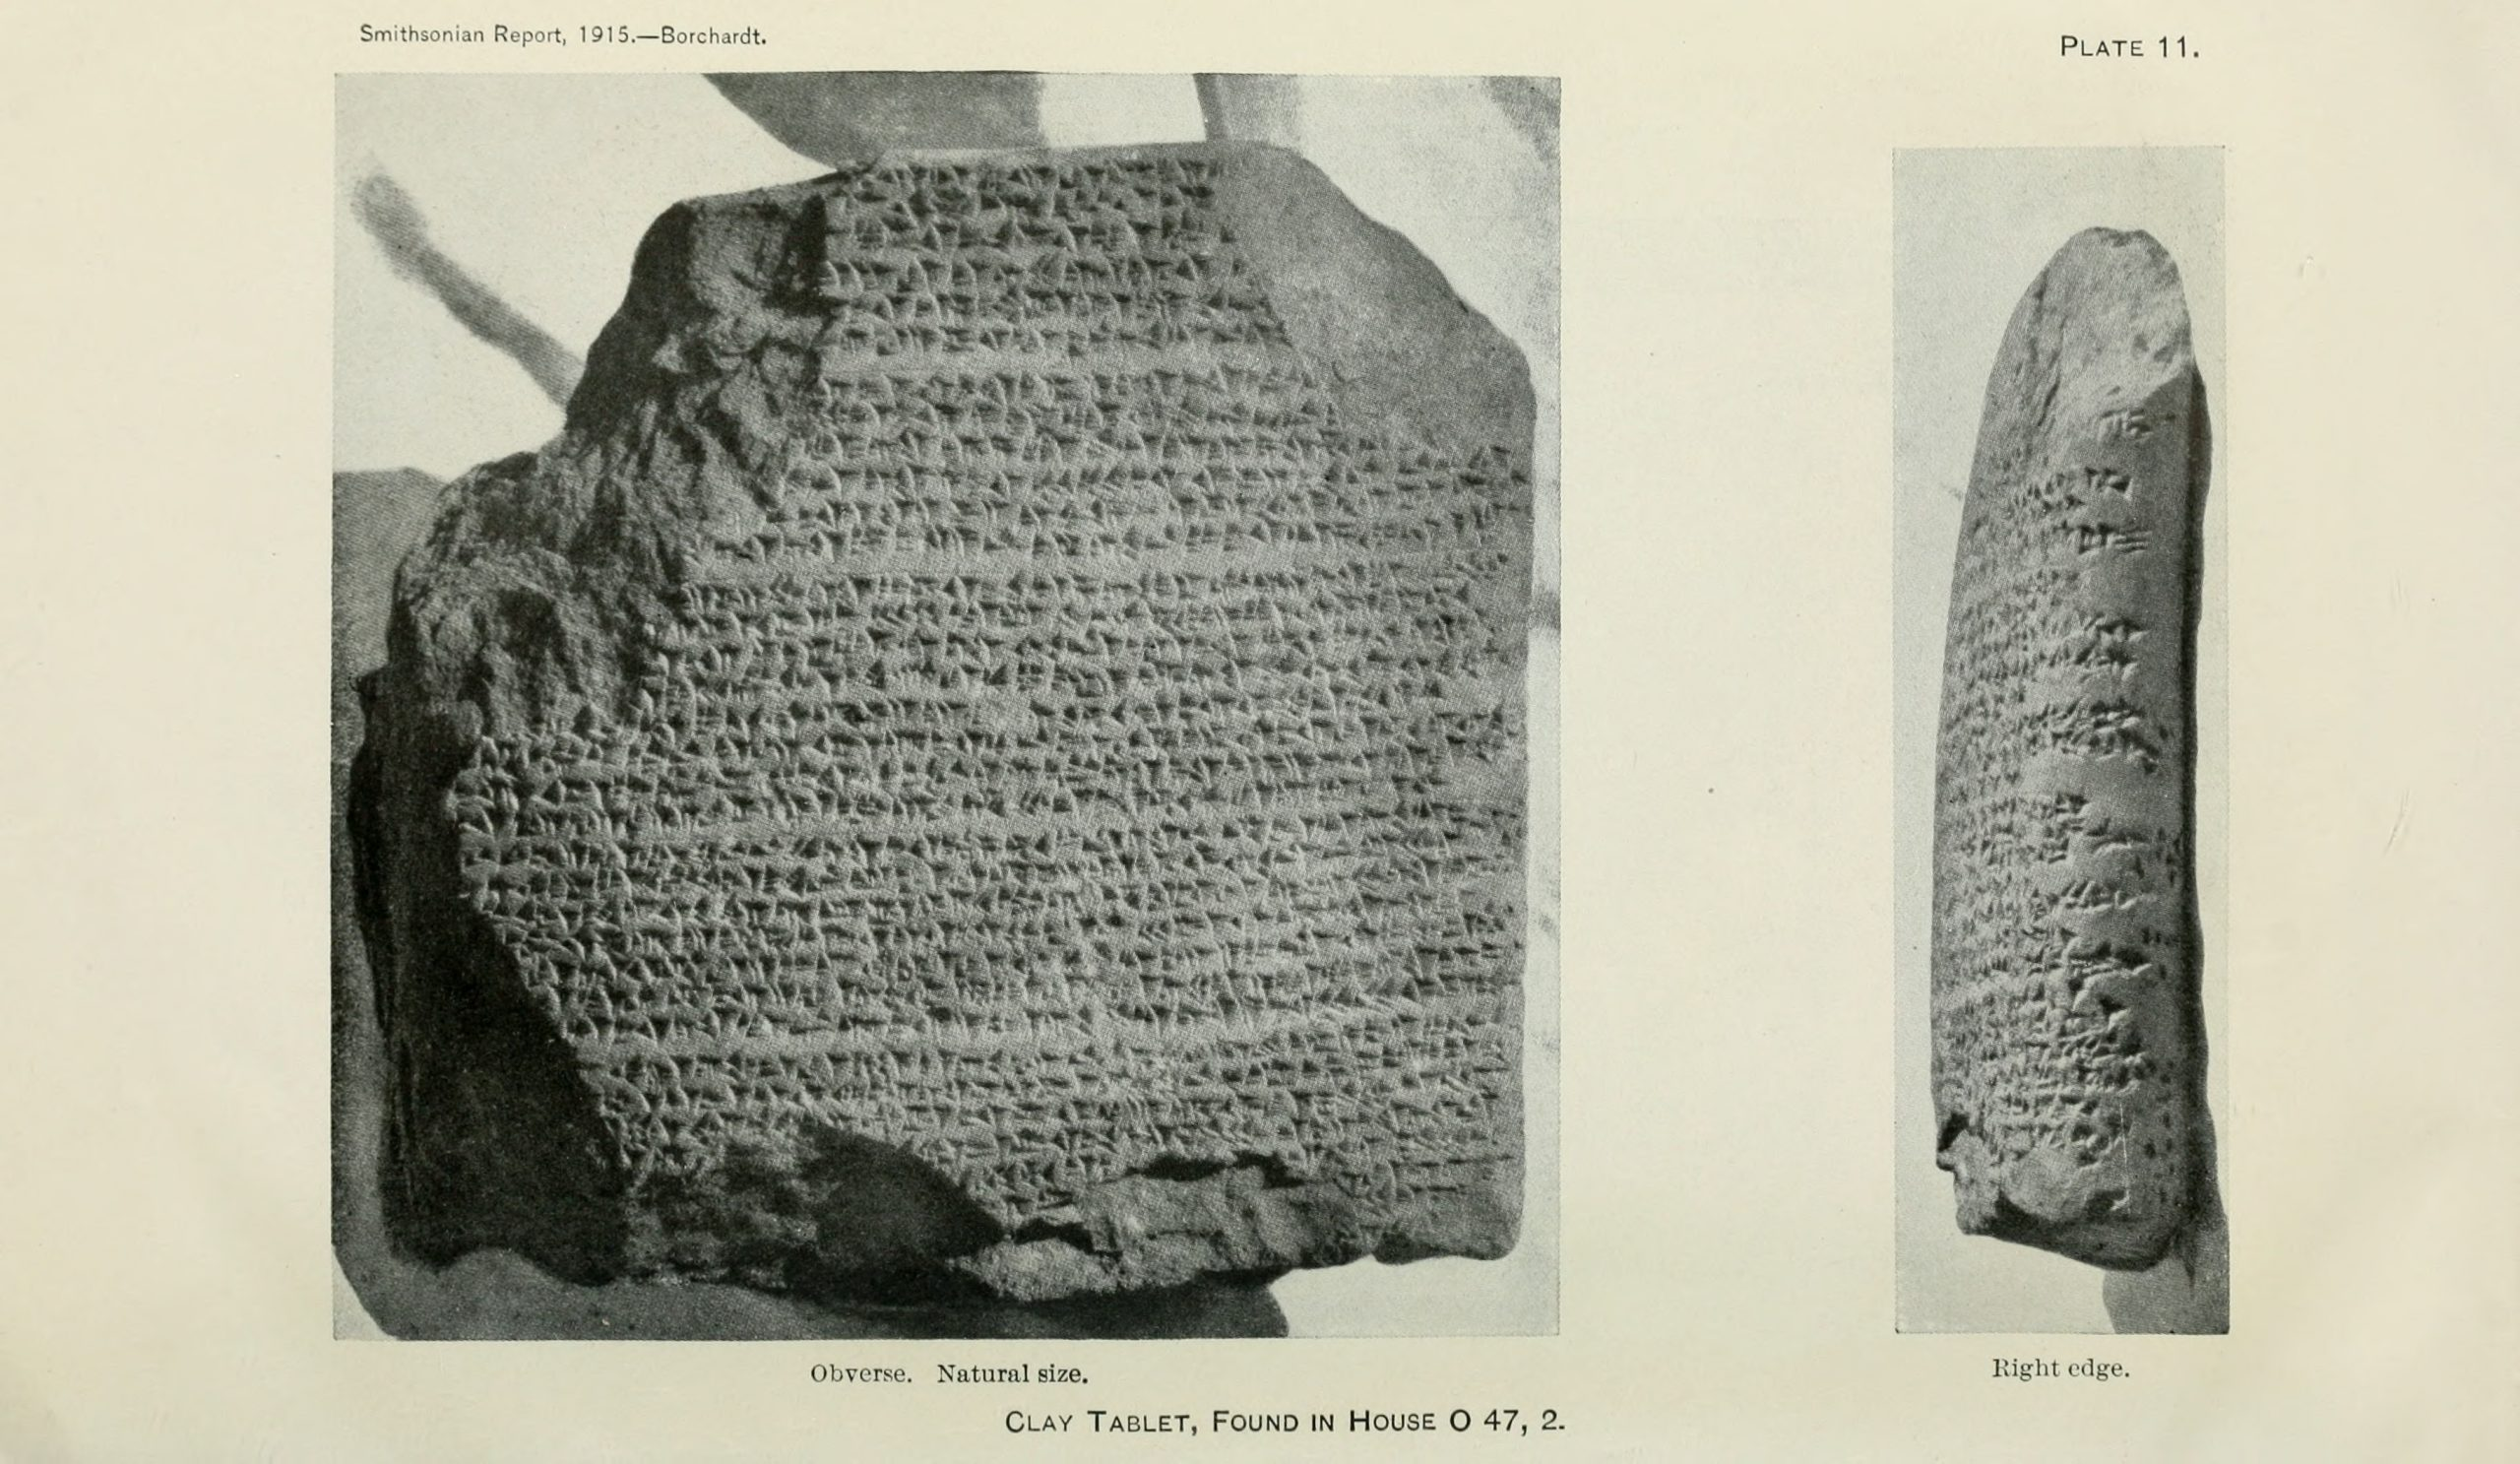 Figure 6, Clay Tablet found in House O47.2 (Borchardt 1916, Plate 11)